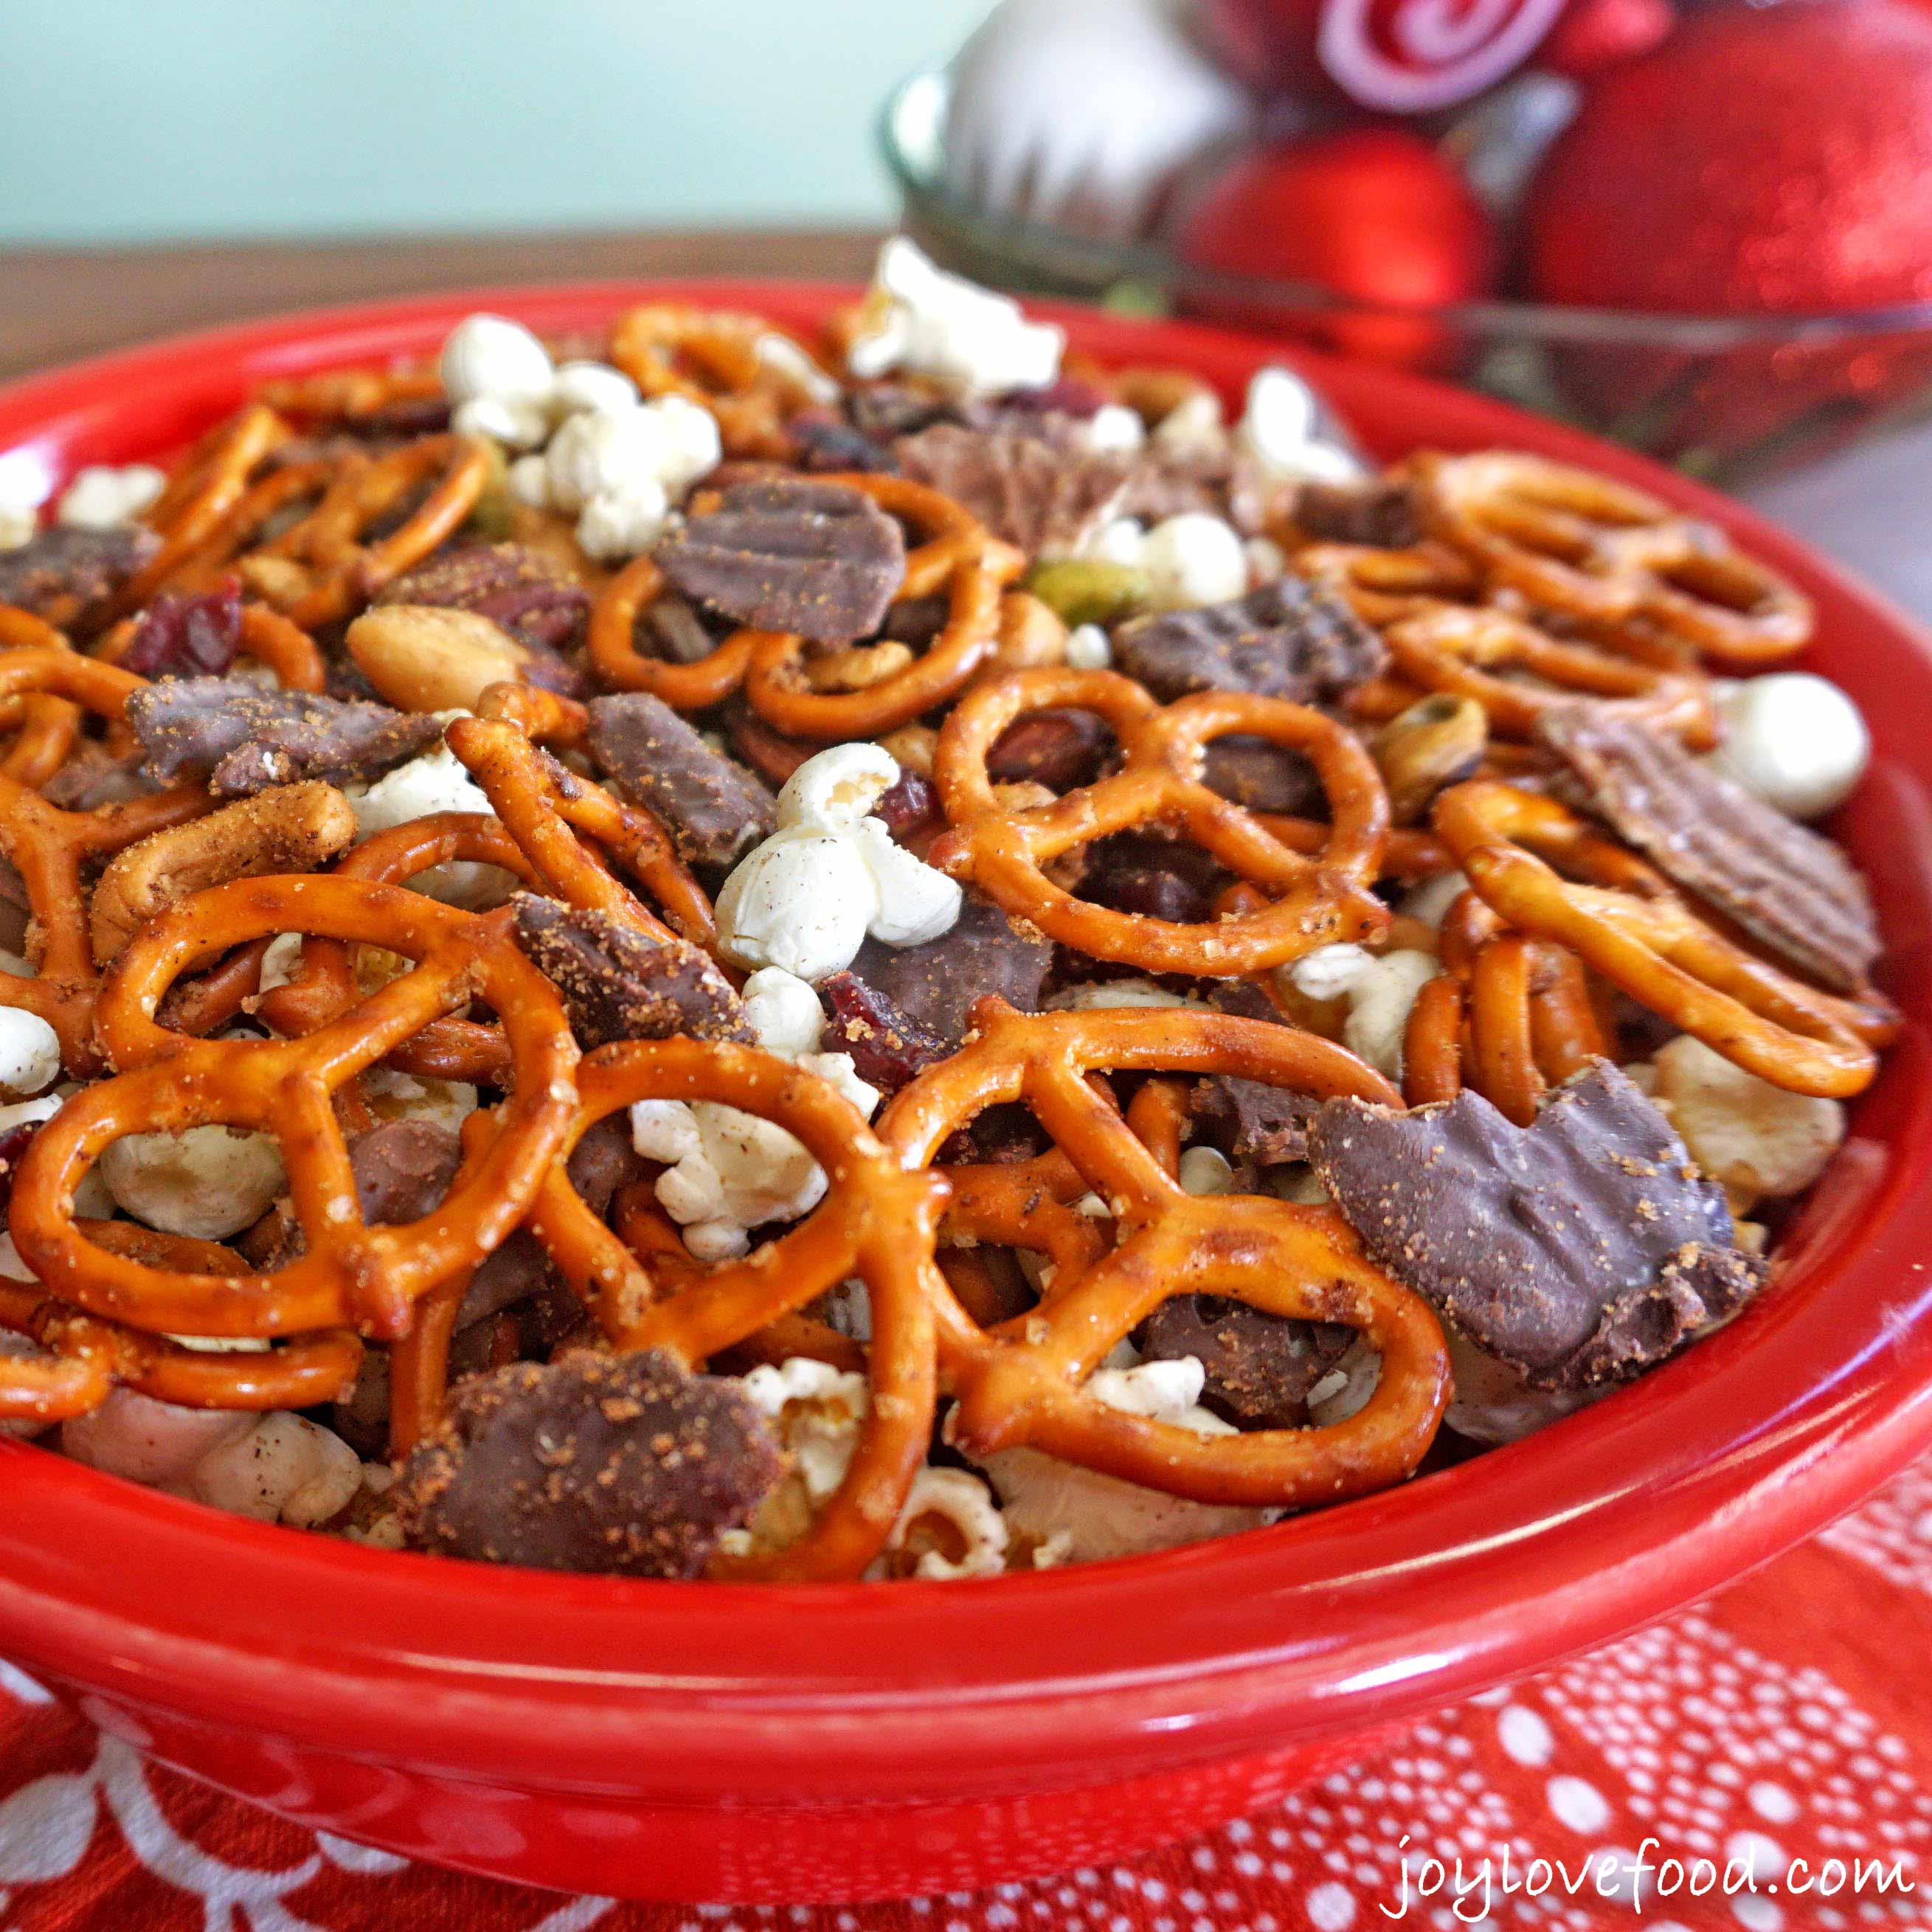 Spiced Holiday Snack Mix - Joy Love Food